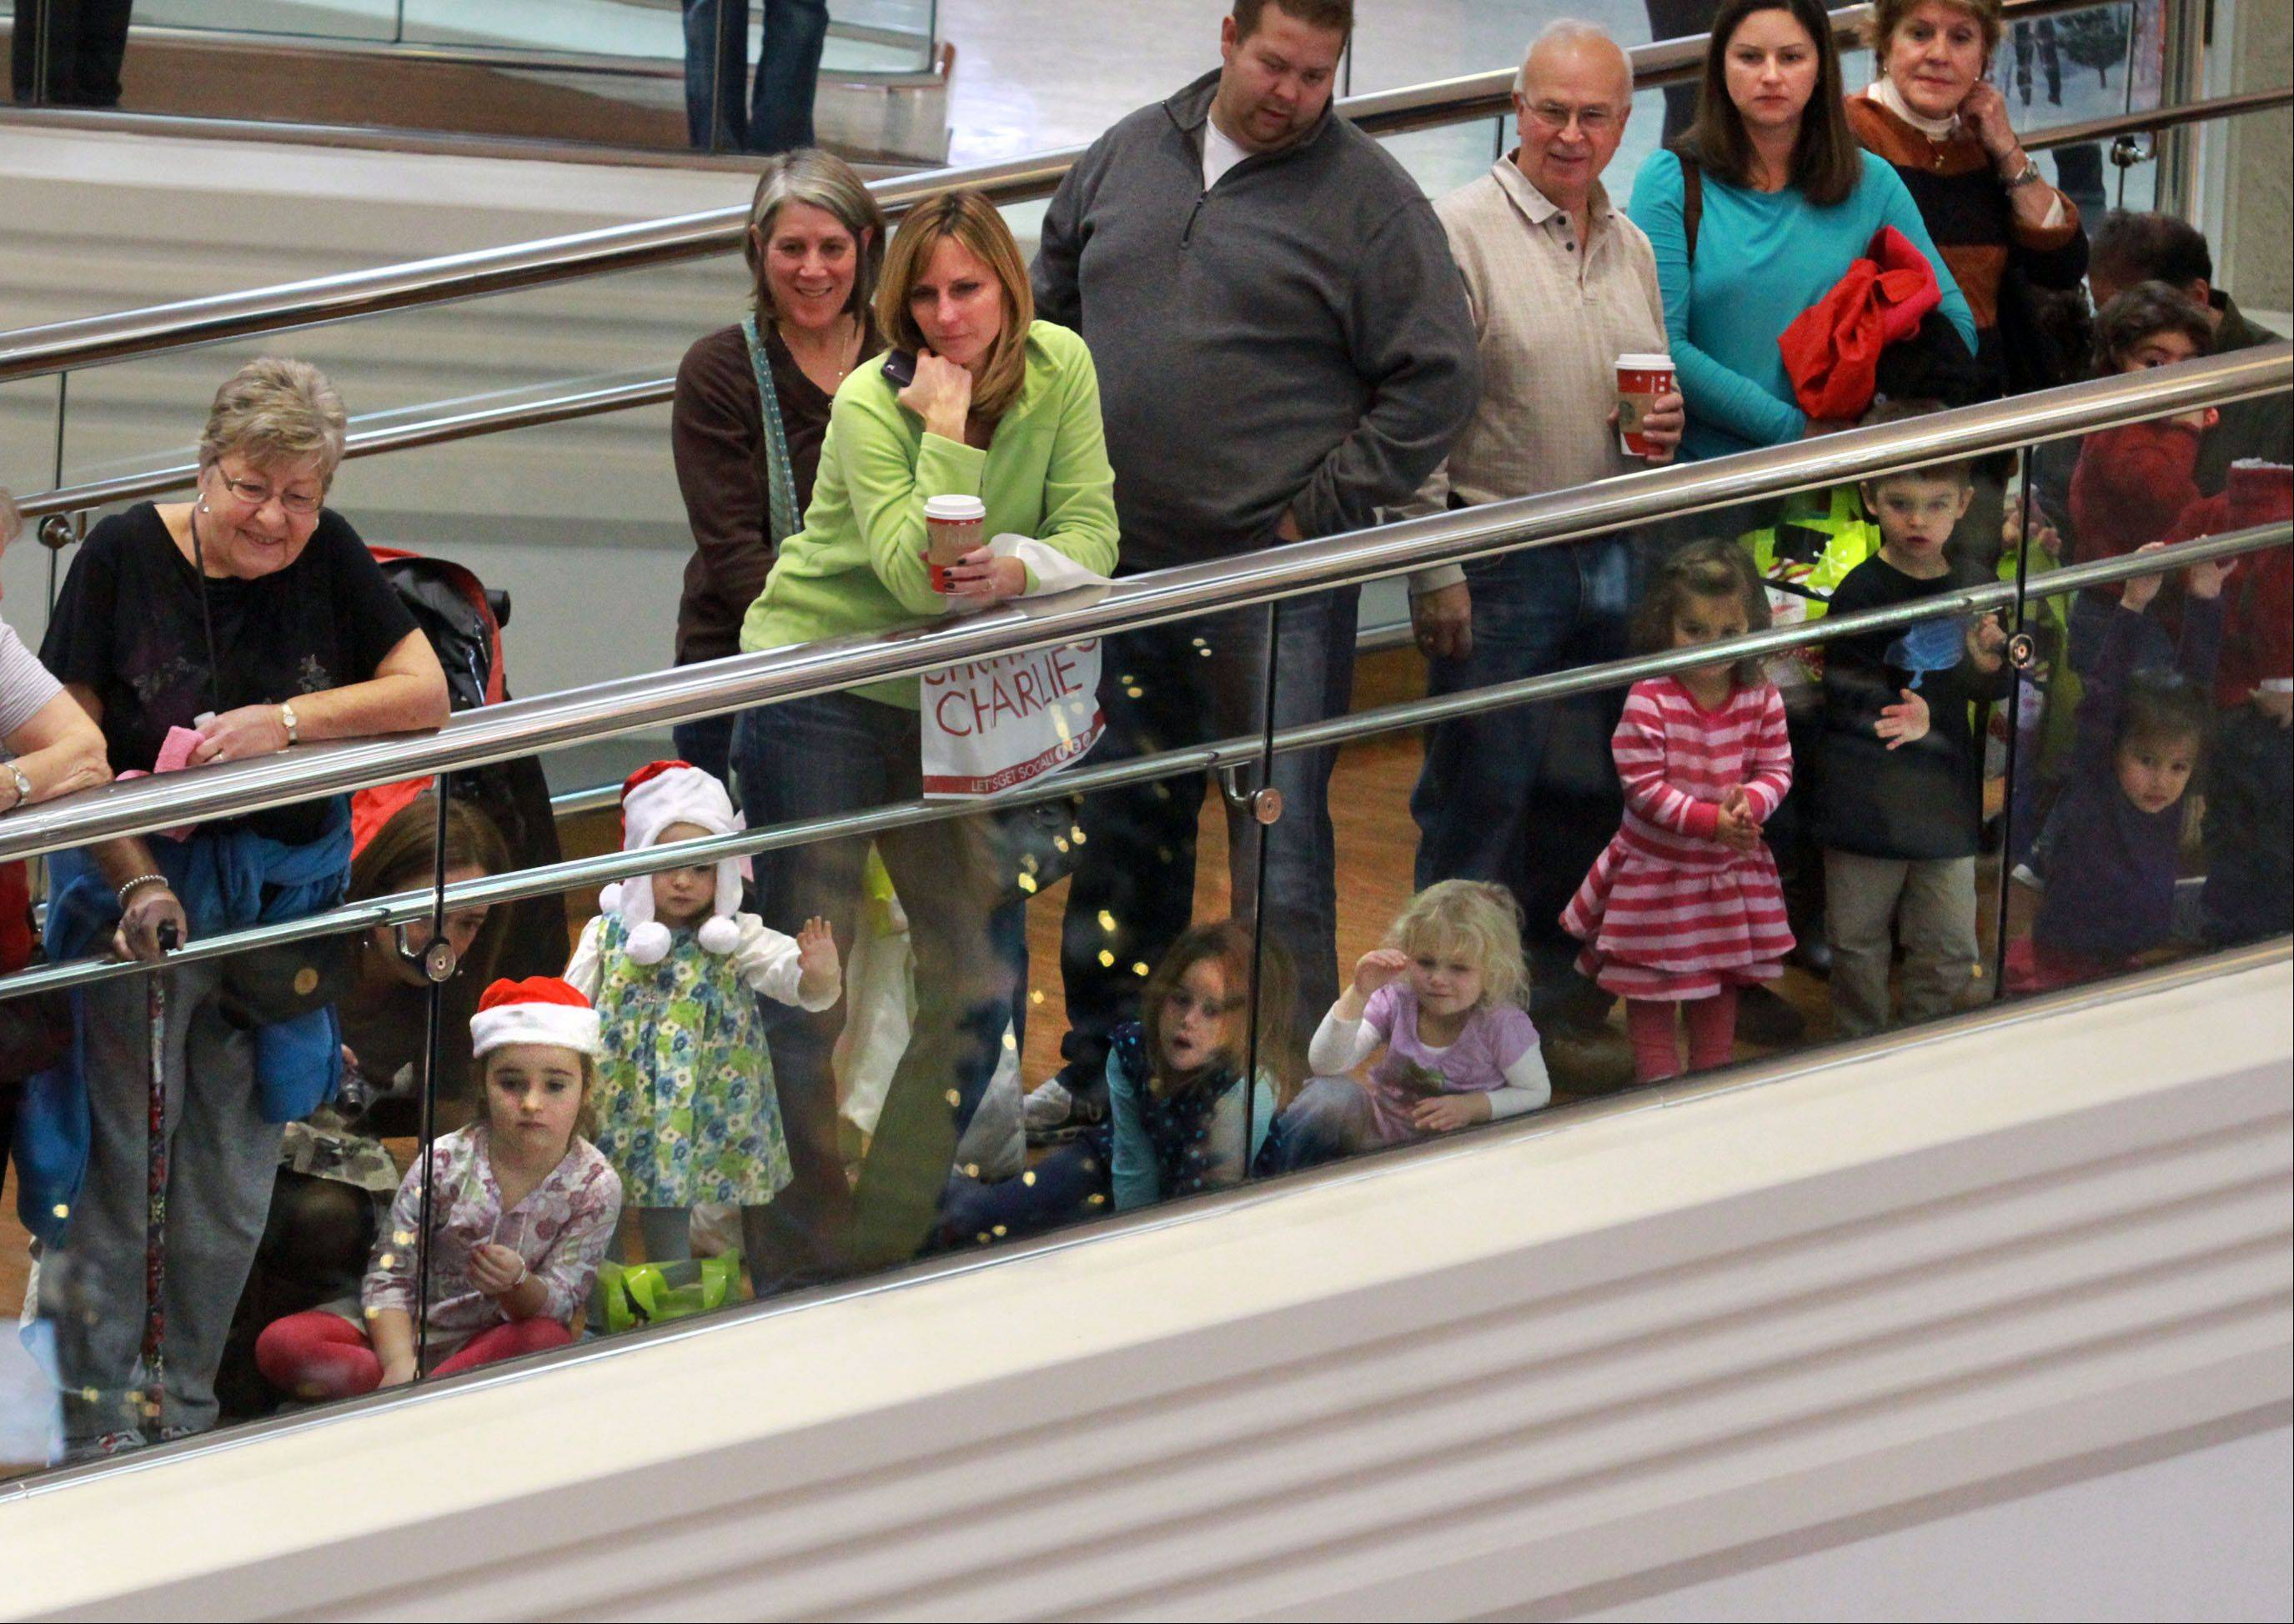 Children and parents watch the Santa Claus parade from the second level of Woodfield Mall in Schaumburg on Thursday. Santa's arrival kicked off the holiday shopping season.